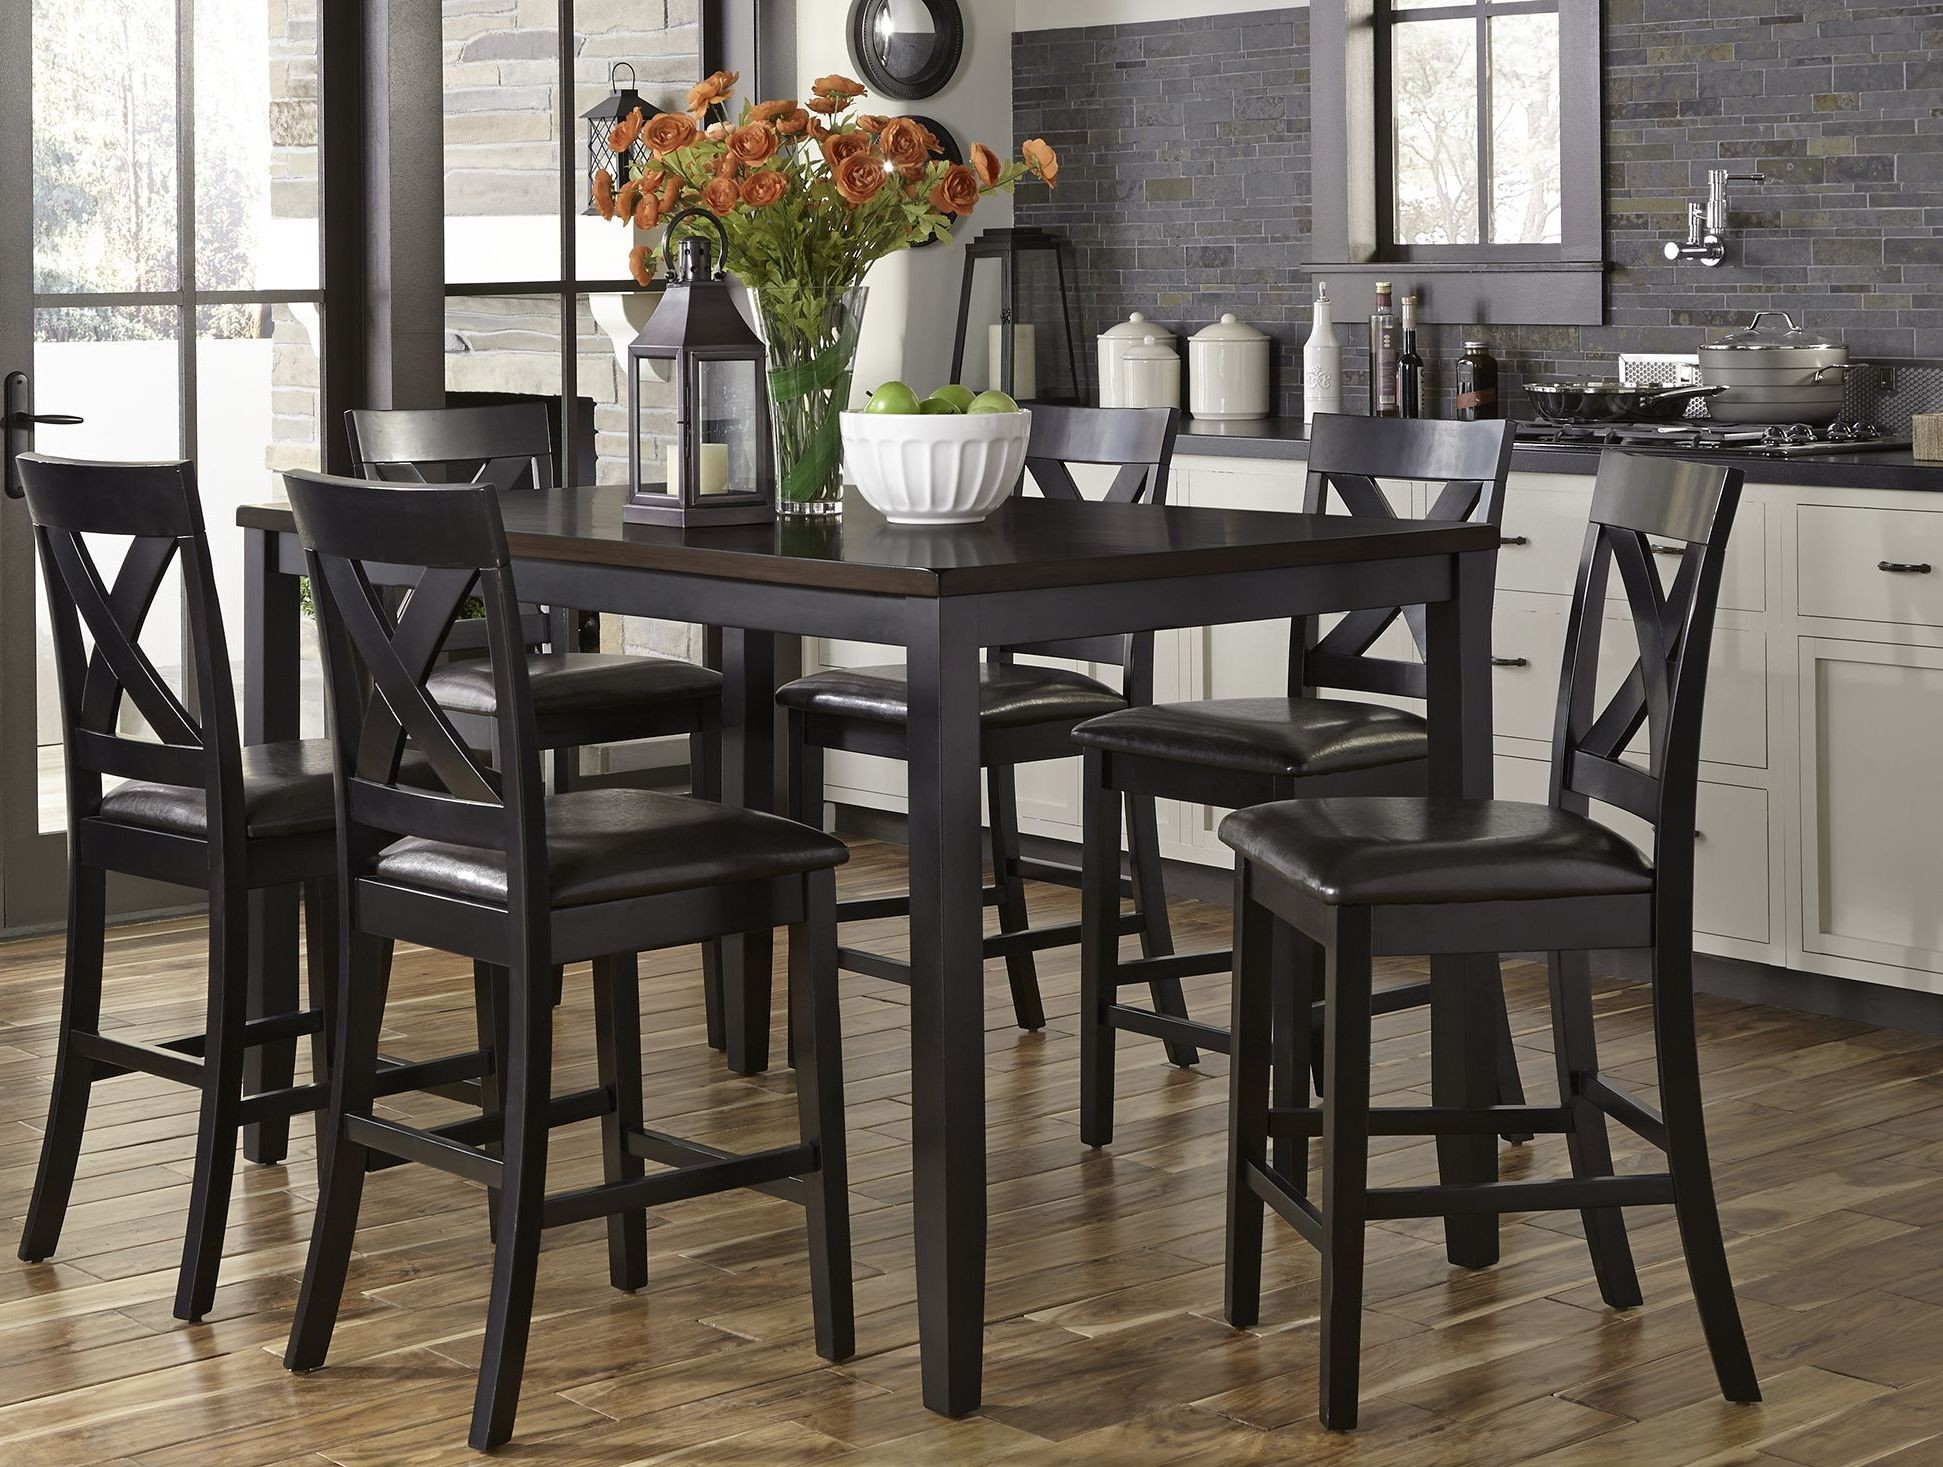 black 7 piece dining room set | Thornton II Black and Brown 7 Piece Counter Height Dining ...